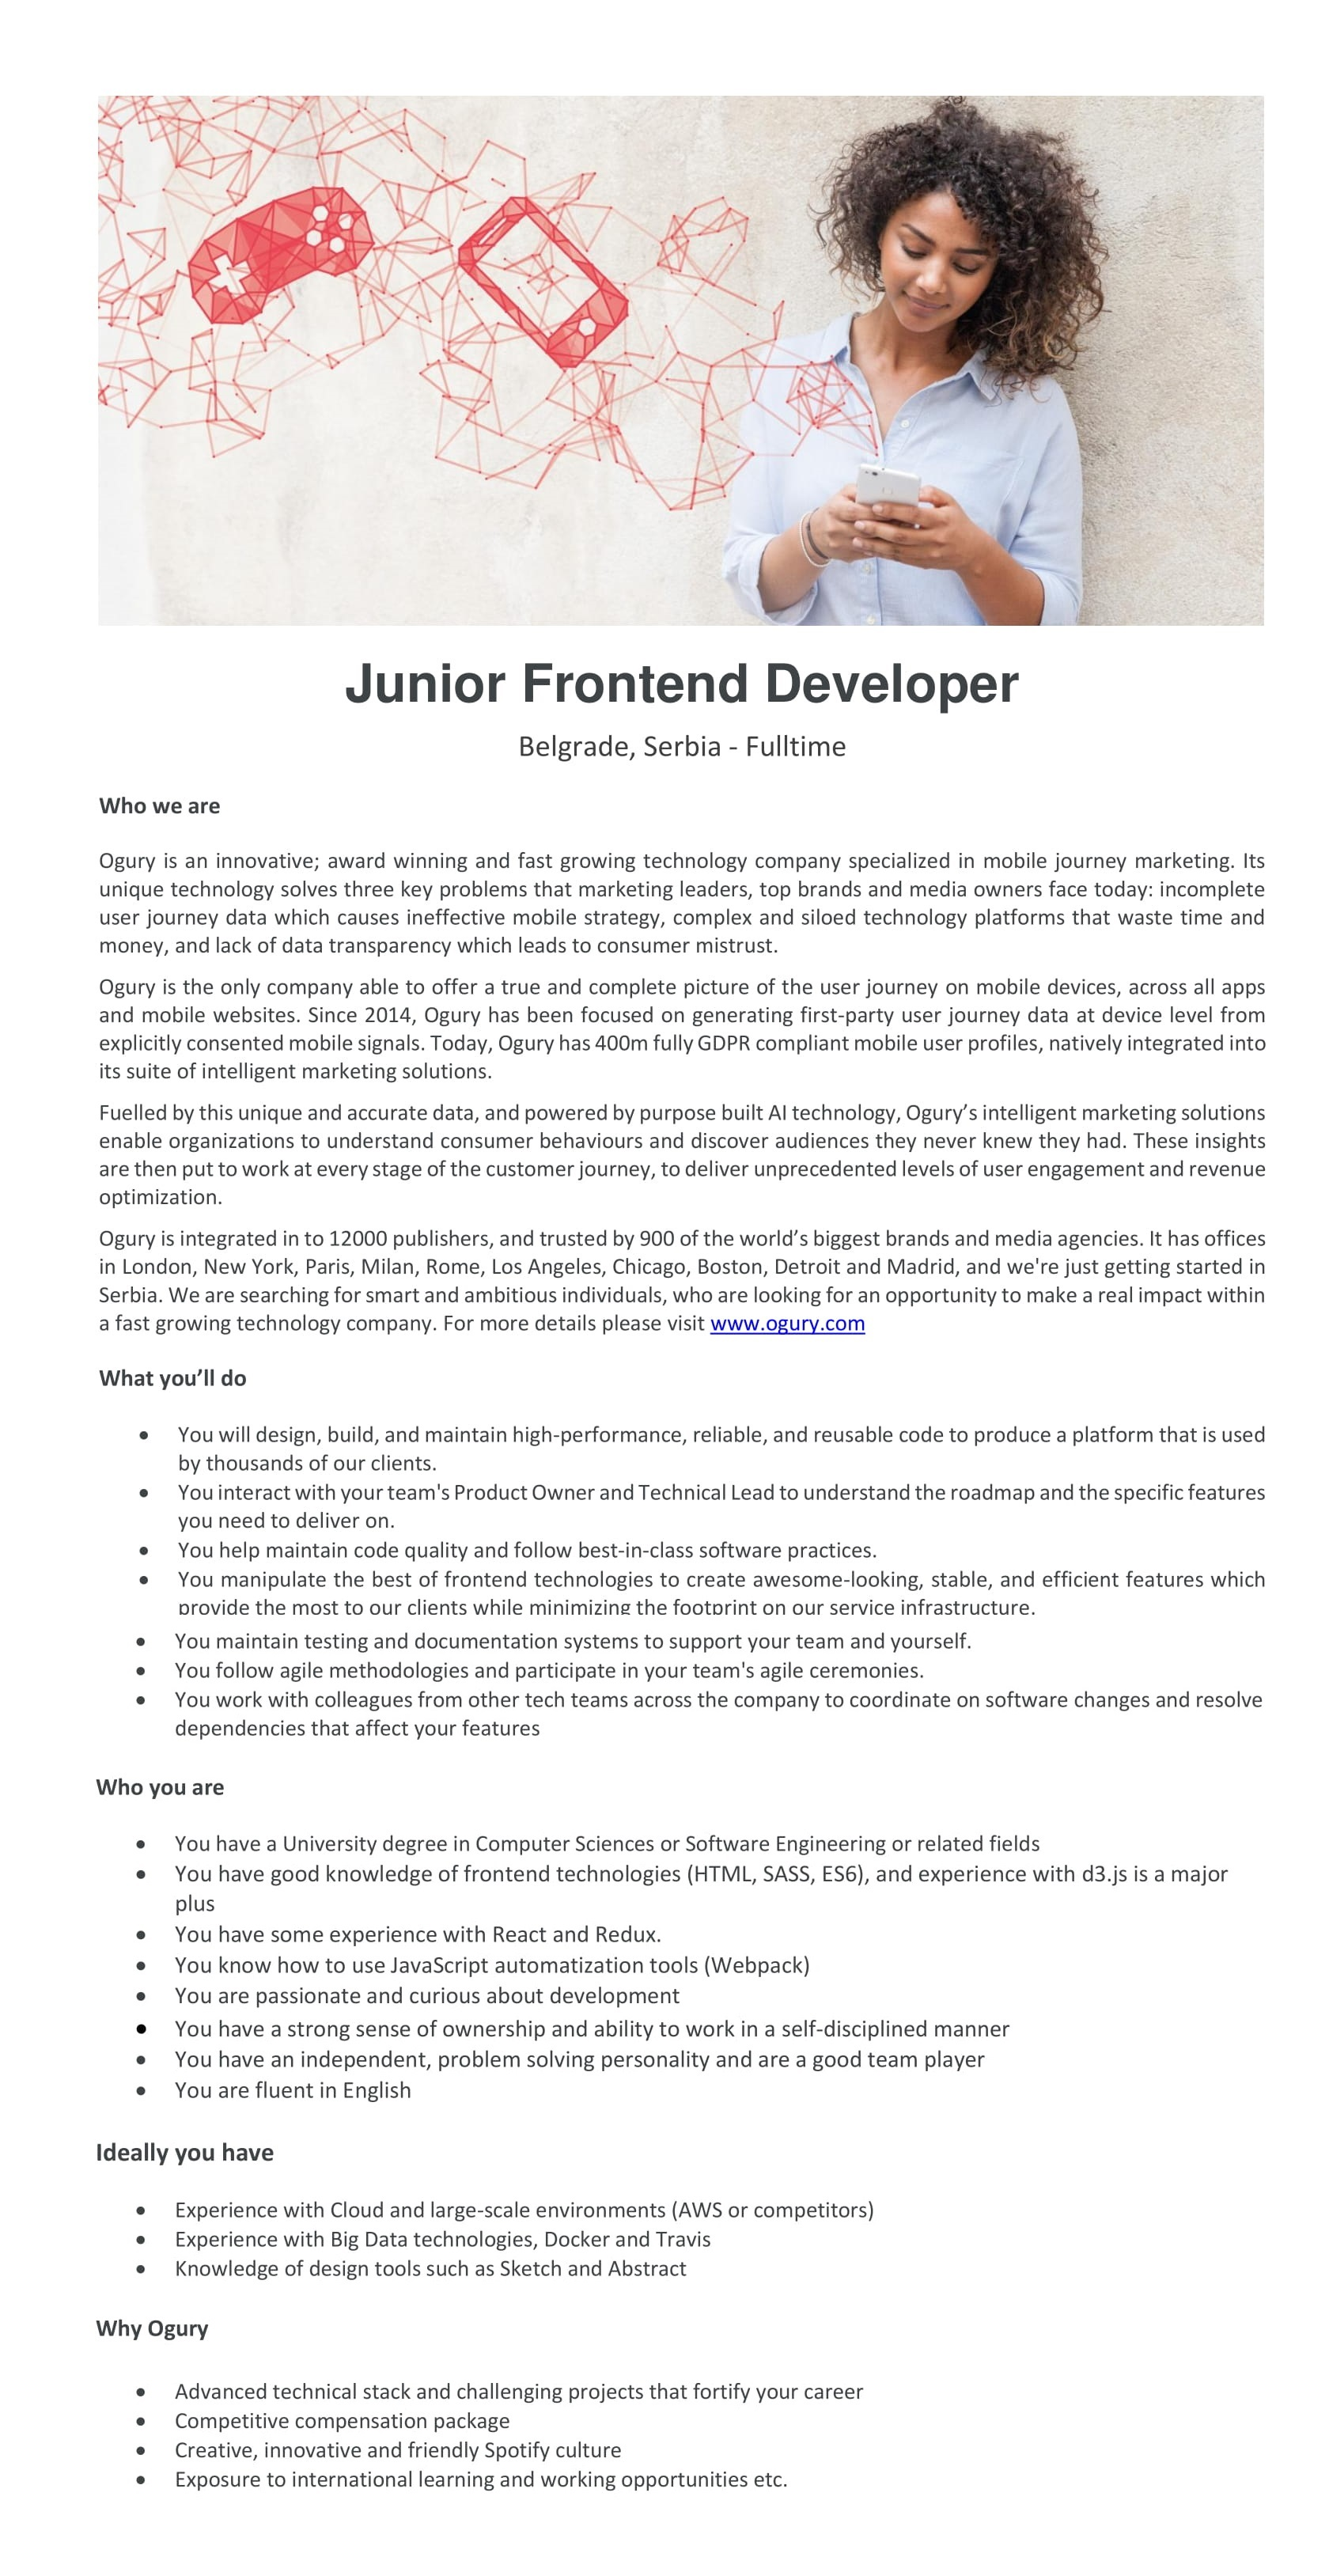 Junior Fronted Developer